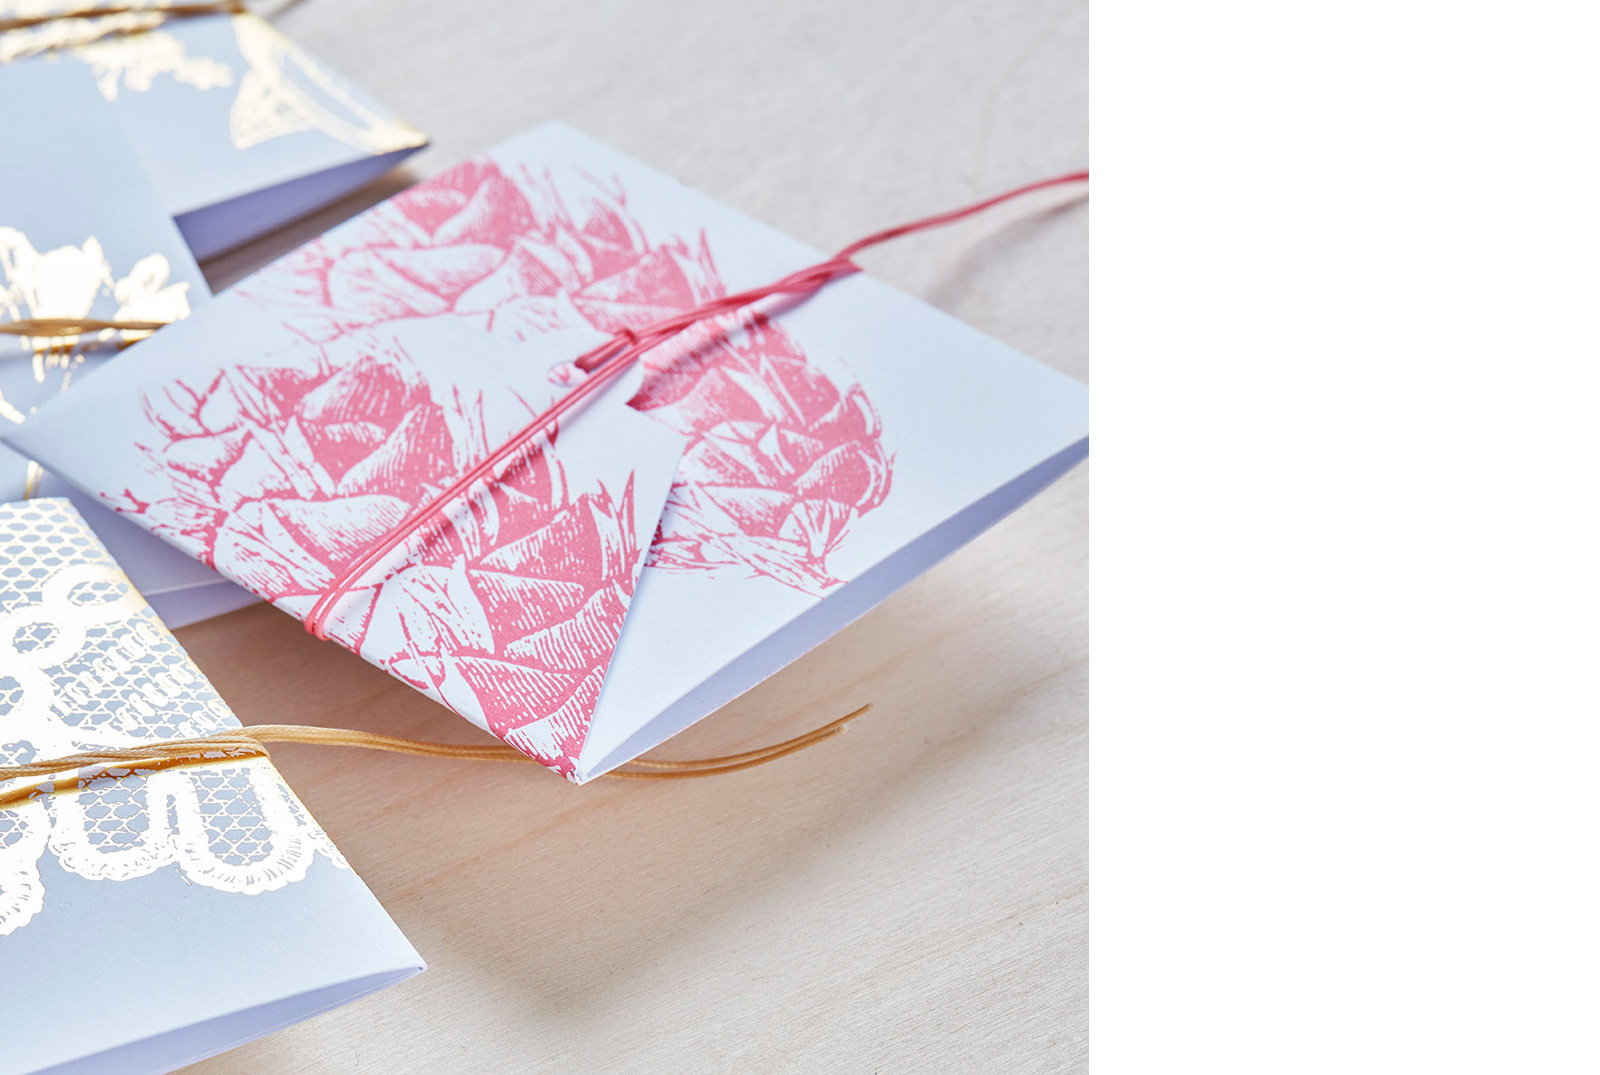 Sanne Lindberg Cards in SWEET PINK. SWEET PINK on crispy white. The cards measure, when folded; 12 x 12 cm. Folds out to triple size.